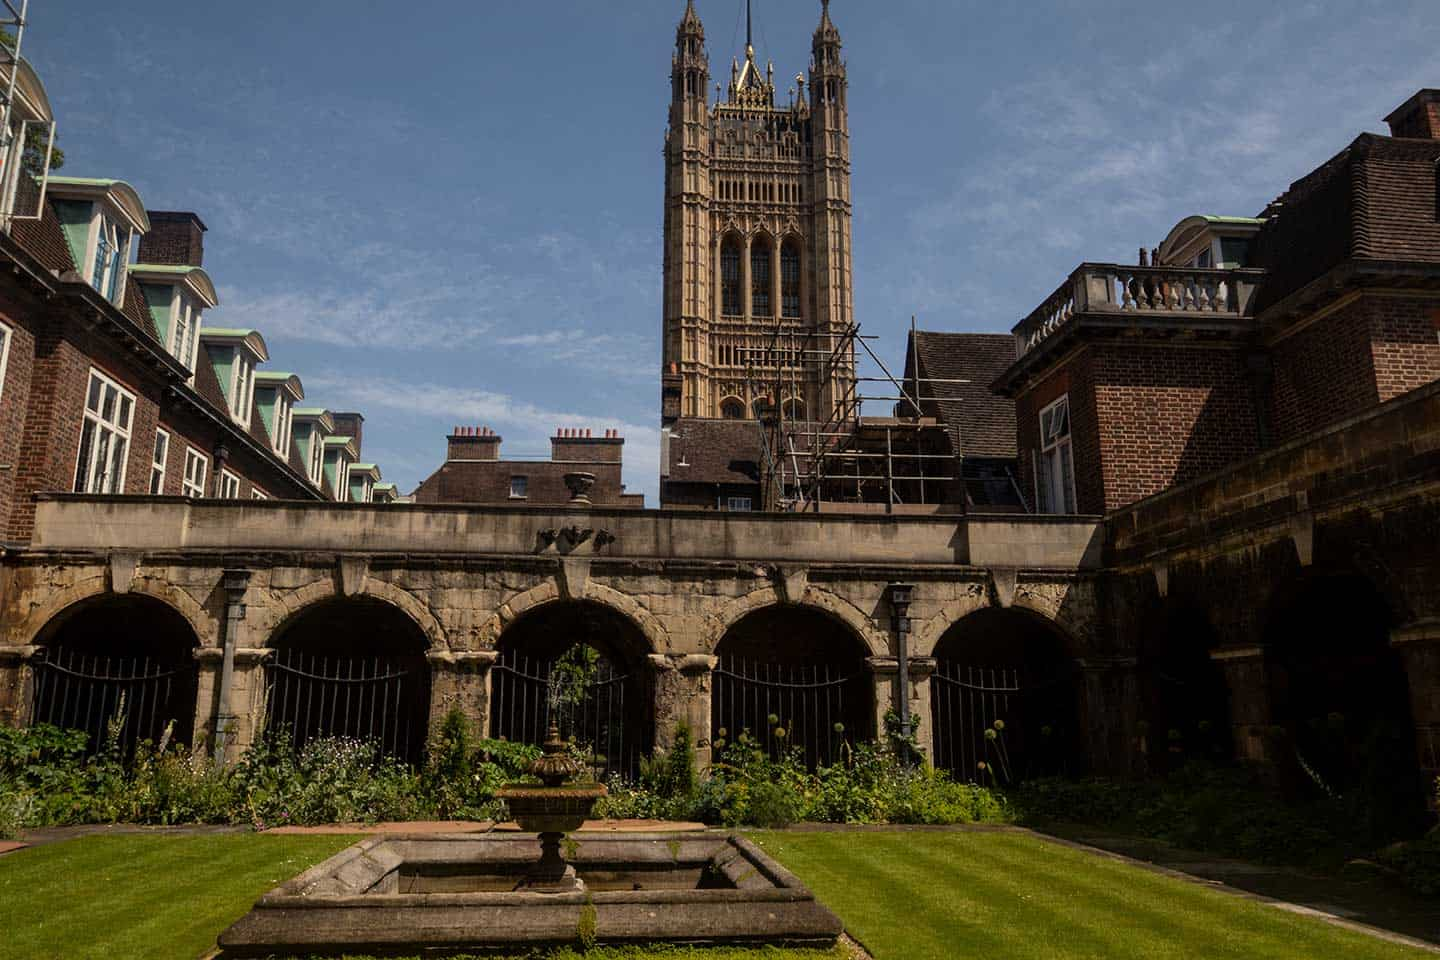 Image of the Little Cloister garden at Westminster Abbey